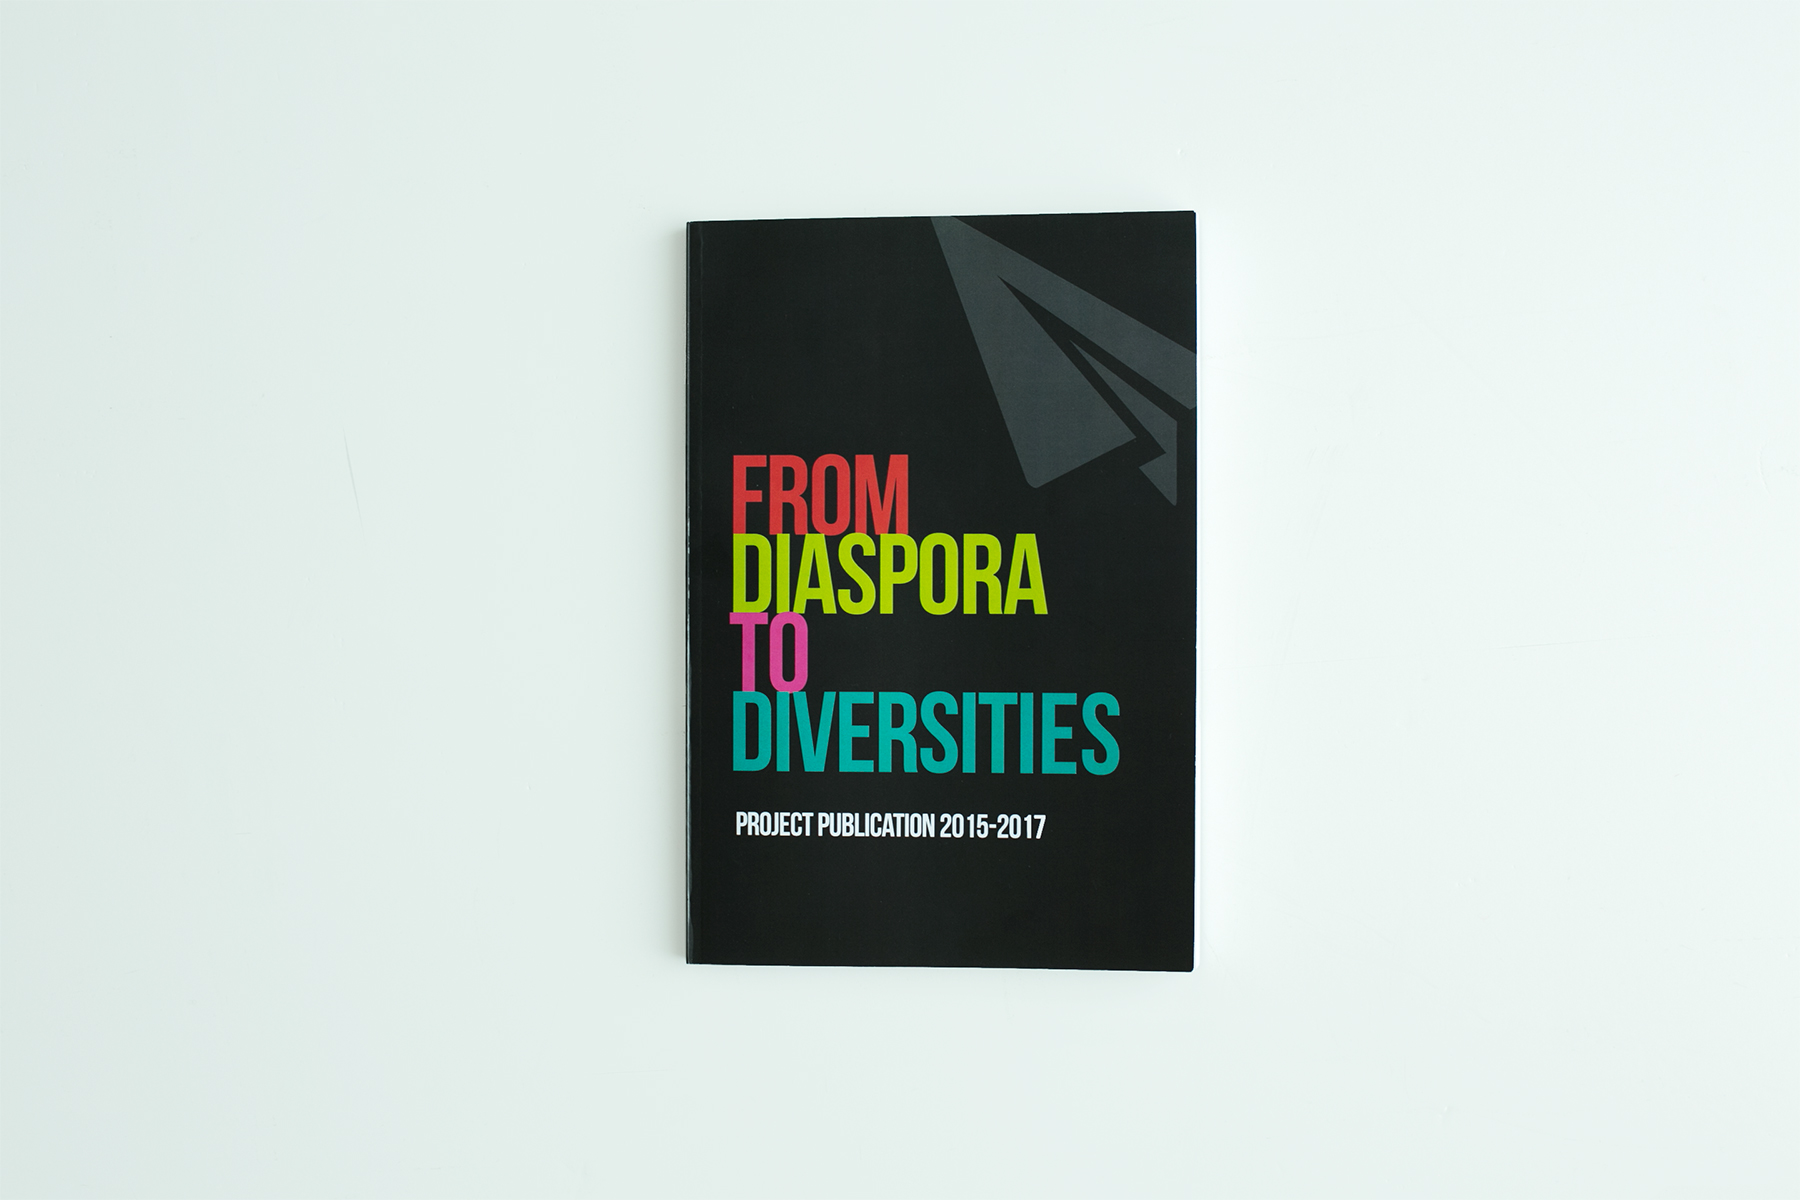 From diaspora to diversities